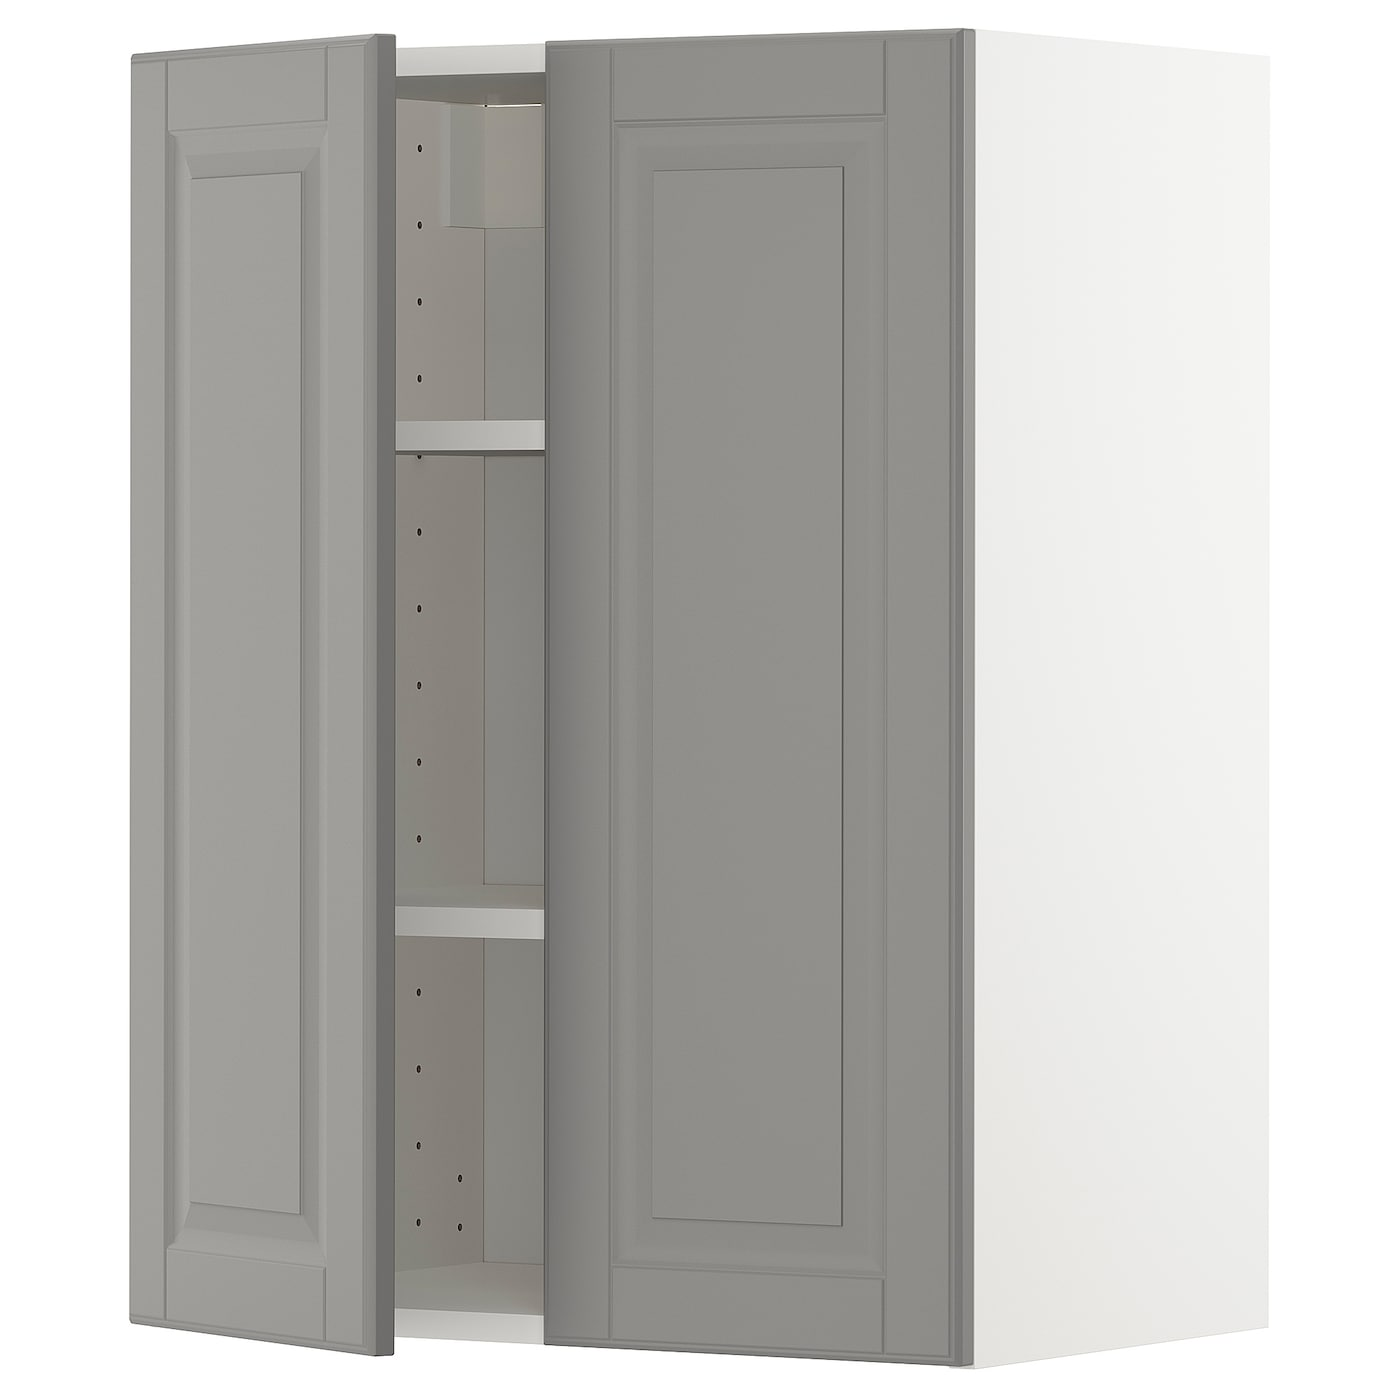 Metod Wall Cabinet With Shelves 2 Doors Veddinge White 60x37x80